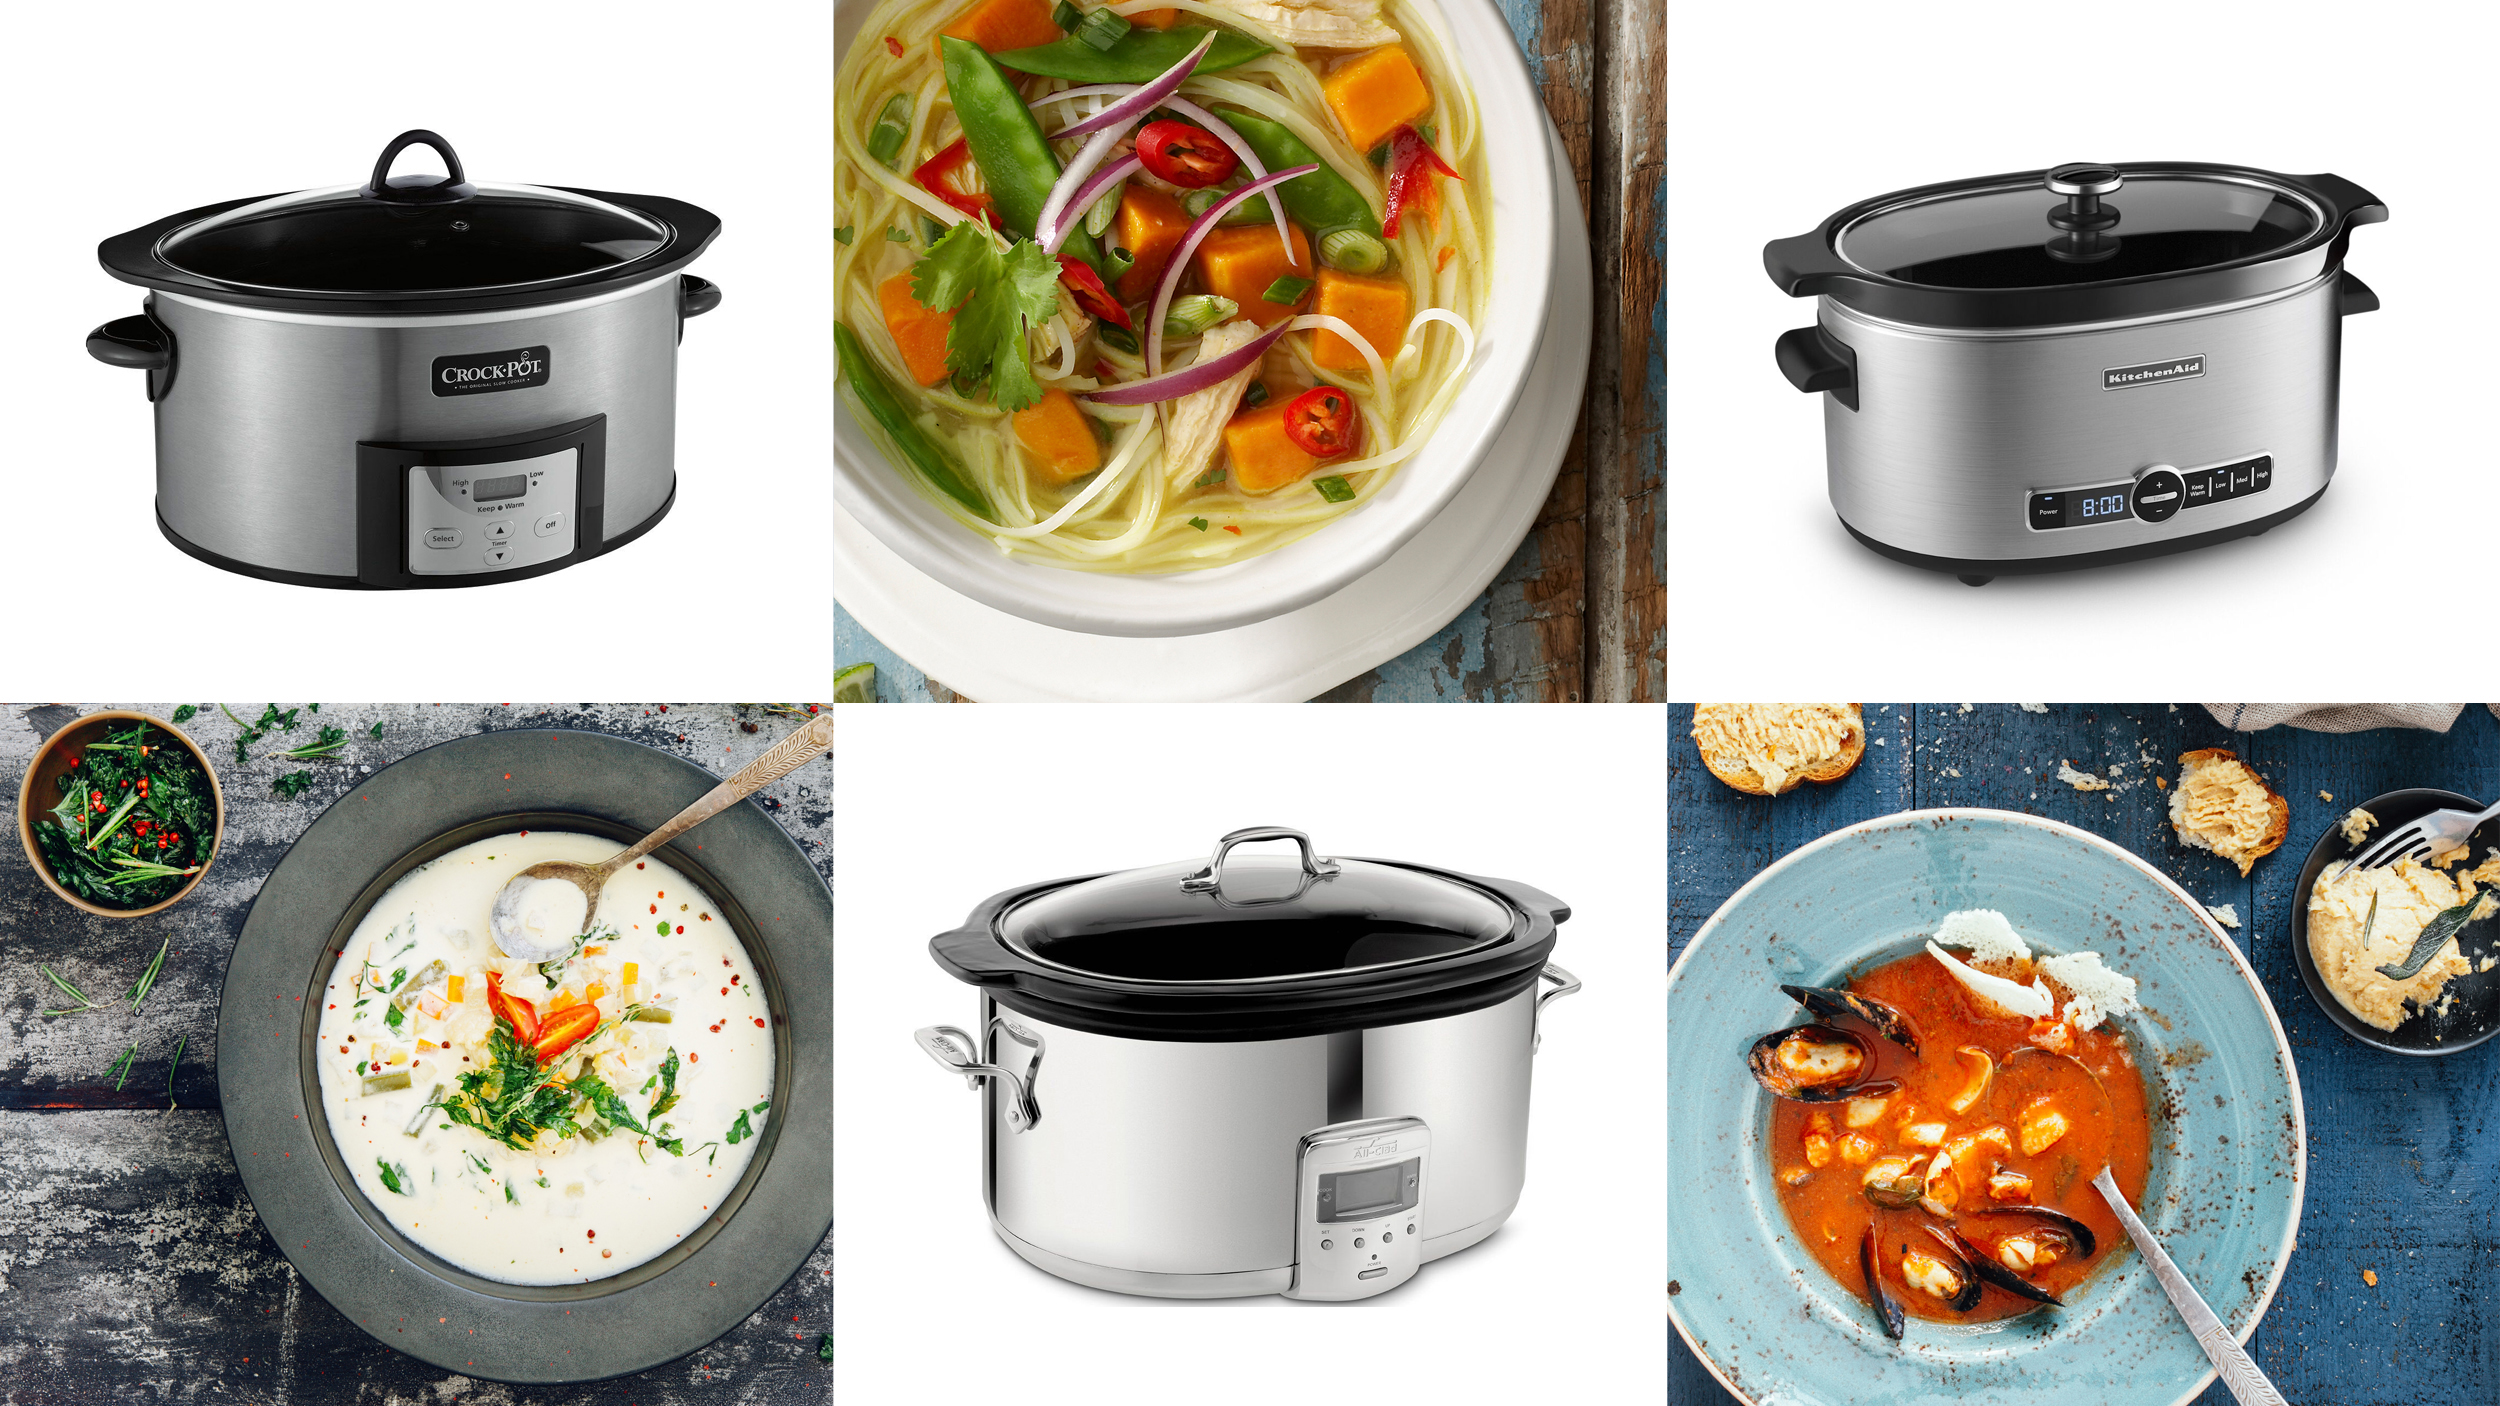 The 7 best Crock-Pots and slow cookers to buy in 2018 - TODAY.com